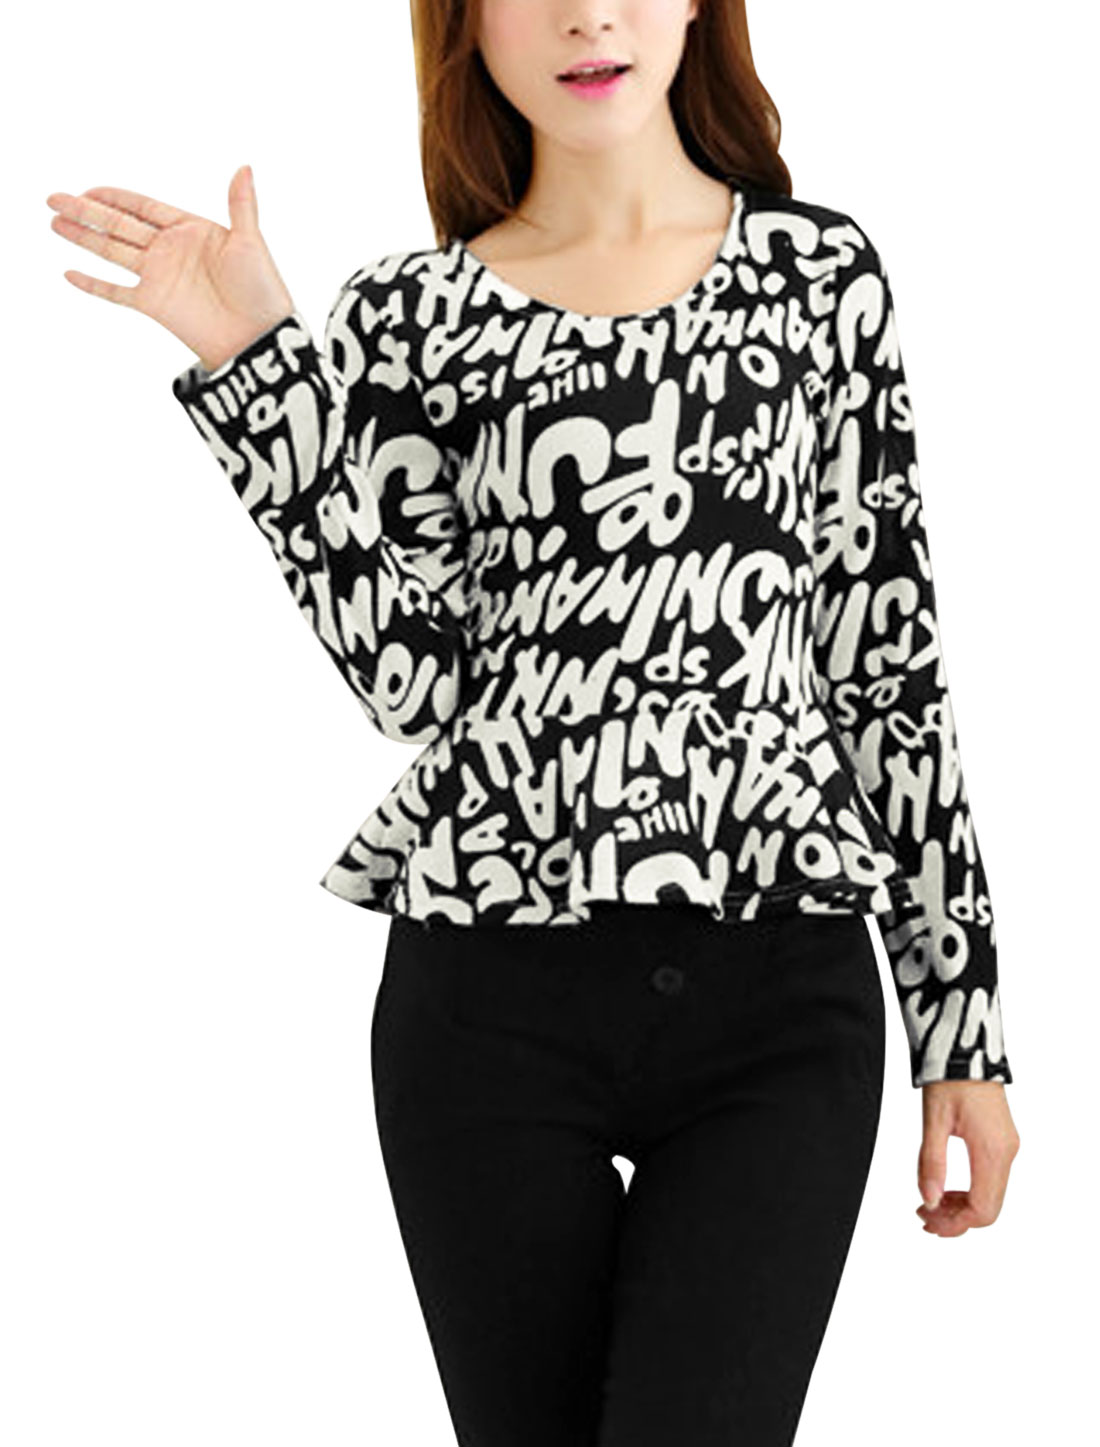 Ladies Letters Pattern Round Neck Ligth Peplum Knit Top Black XS